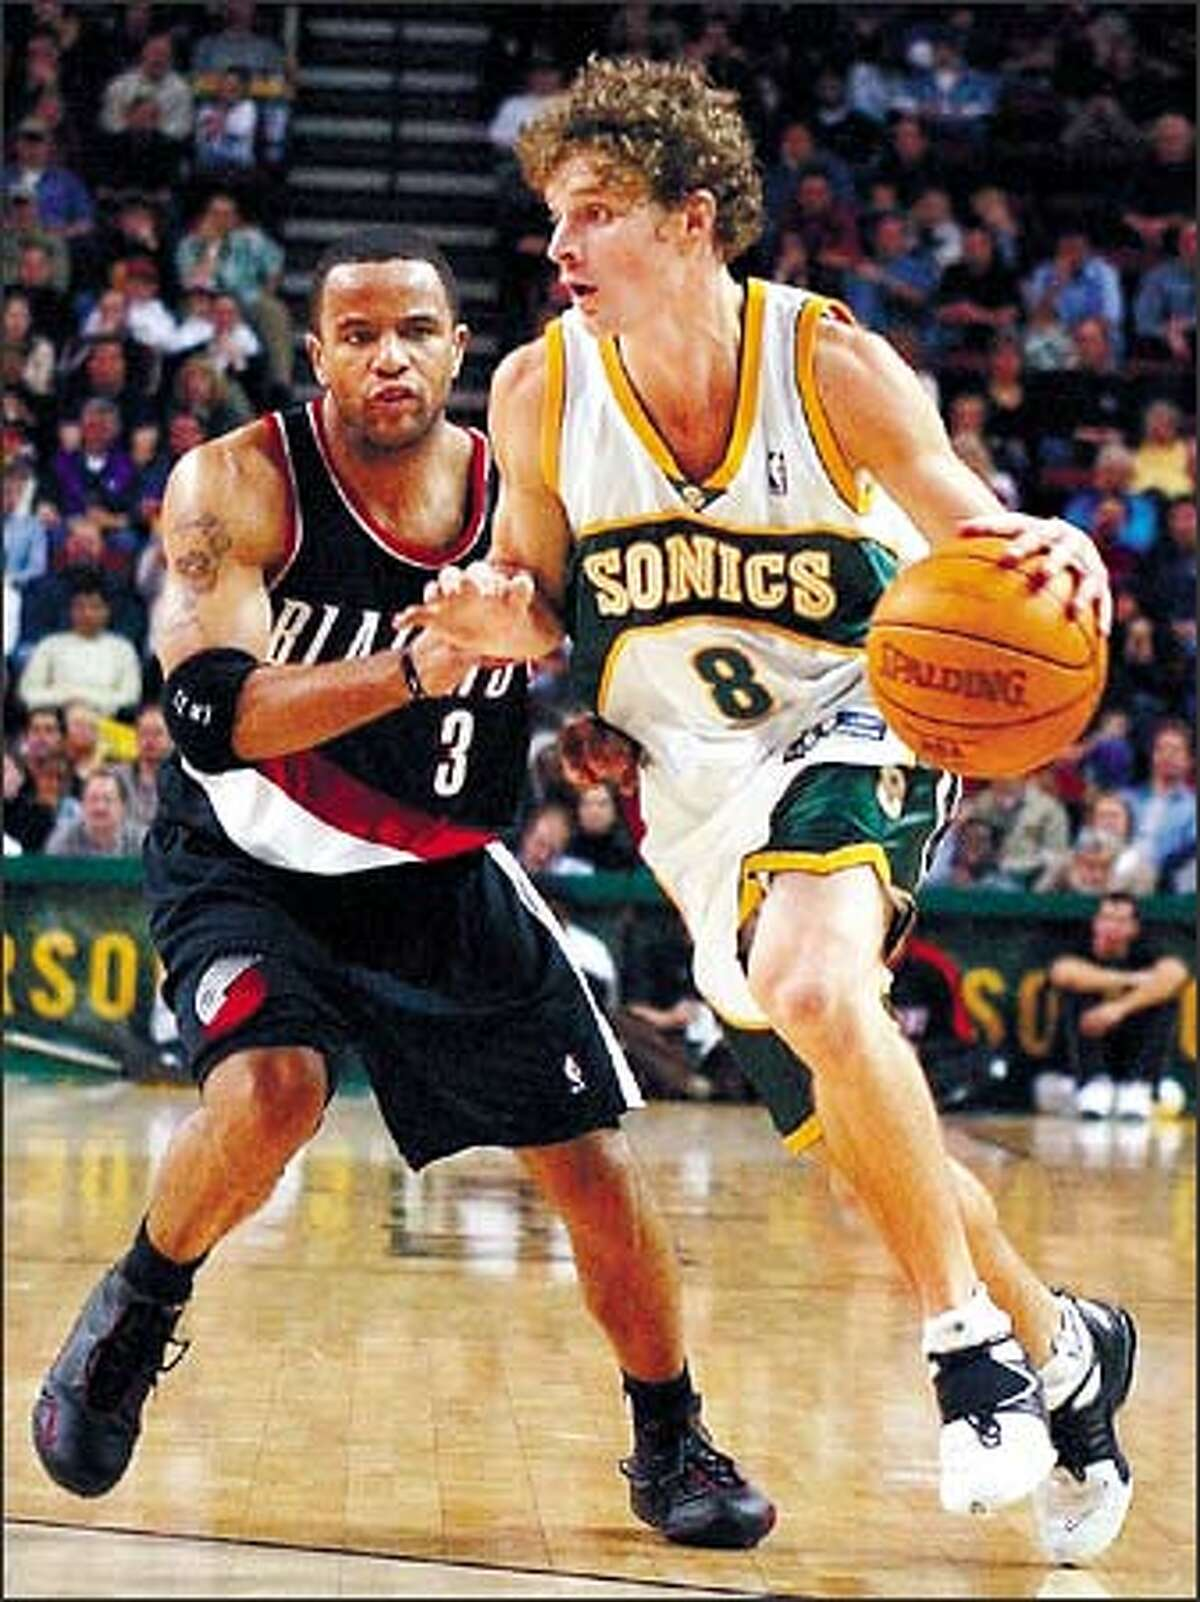 Sonics Luke Ridenour goes past Blazers Damon Stoudamire.